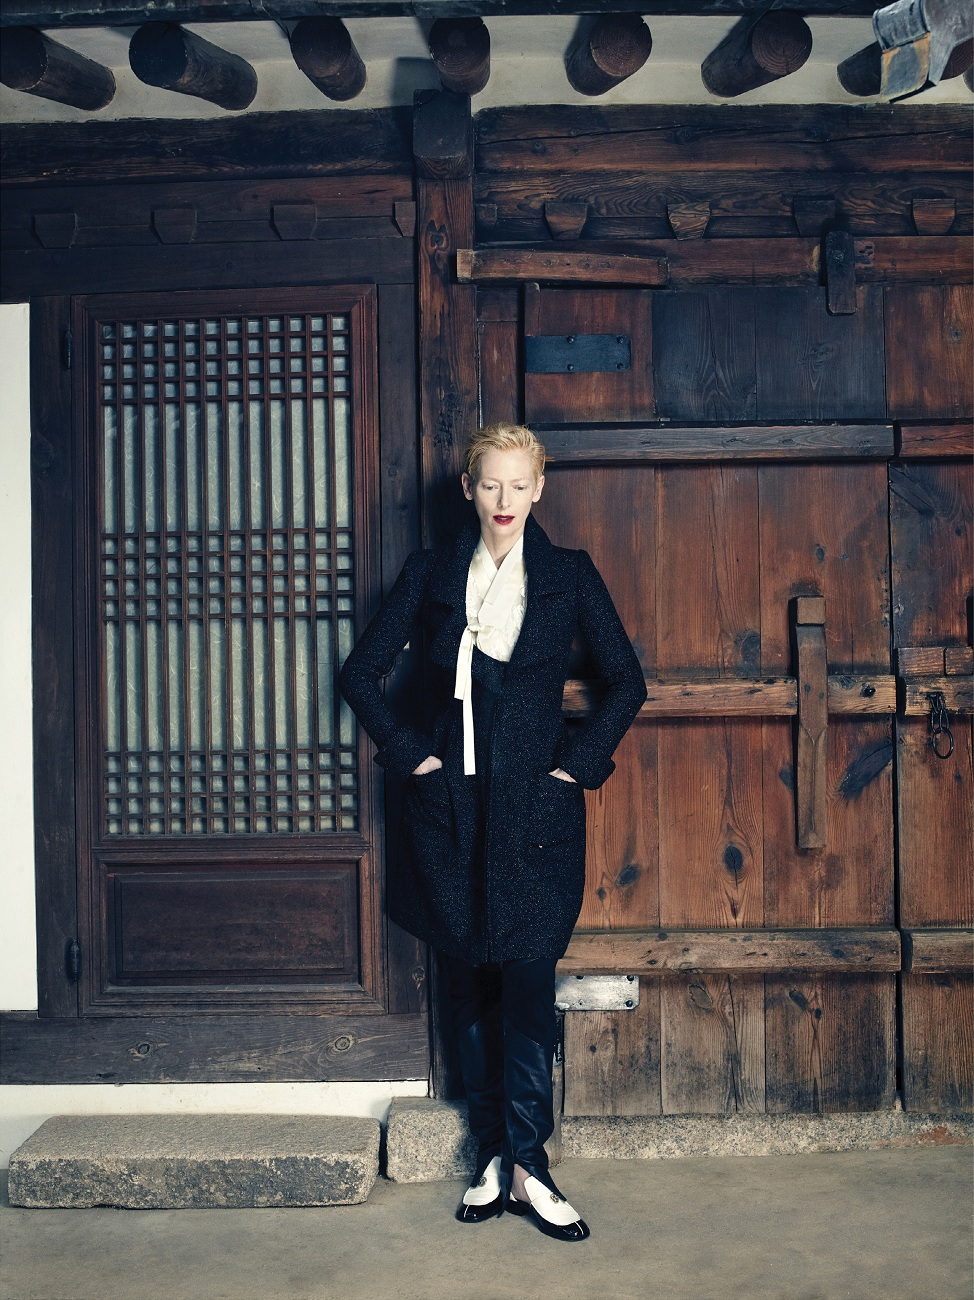 tilda-swinton-by-hong-jang-hyun-vogue-korea-august-2015-03